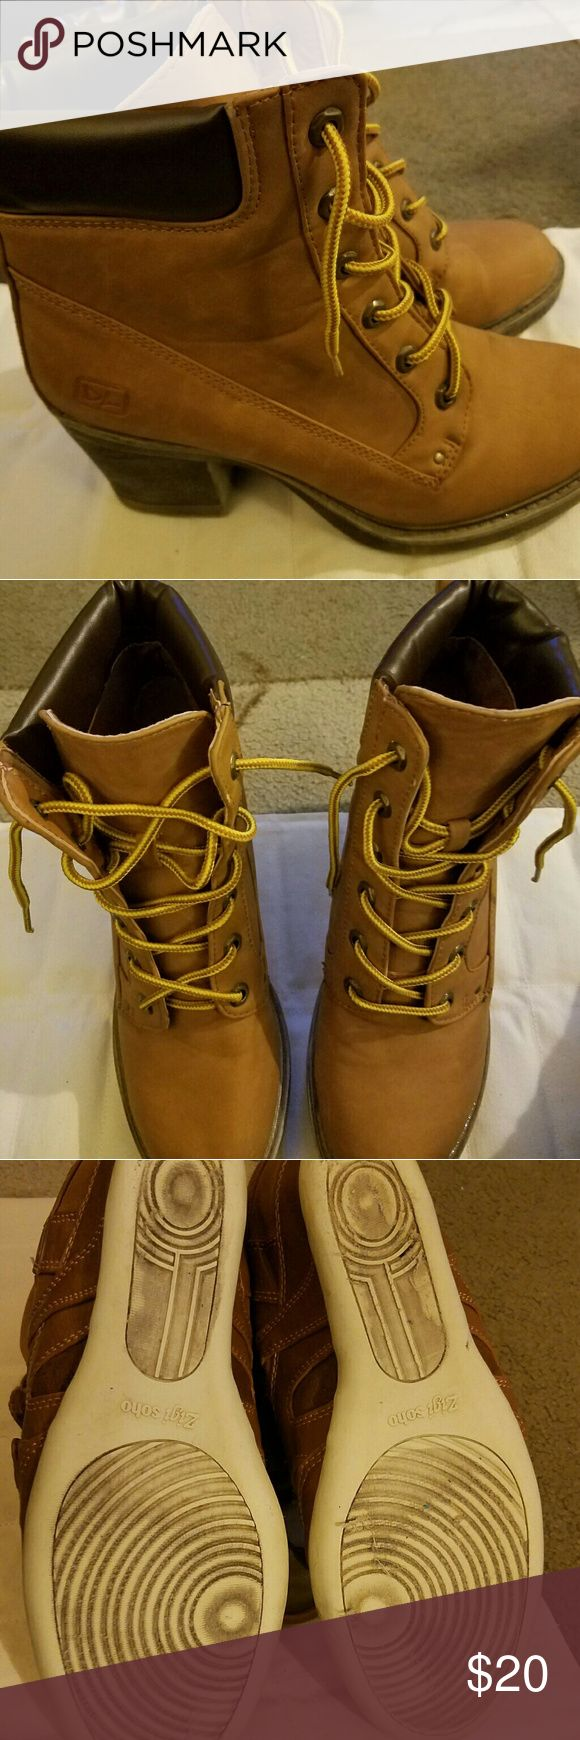 Timberland Style Boots Excellent condition. Minor wear on soles. Dirty Laundry  Shoes Ankle Boots & Booties